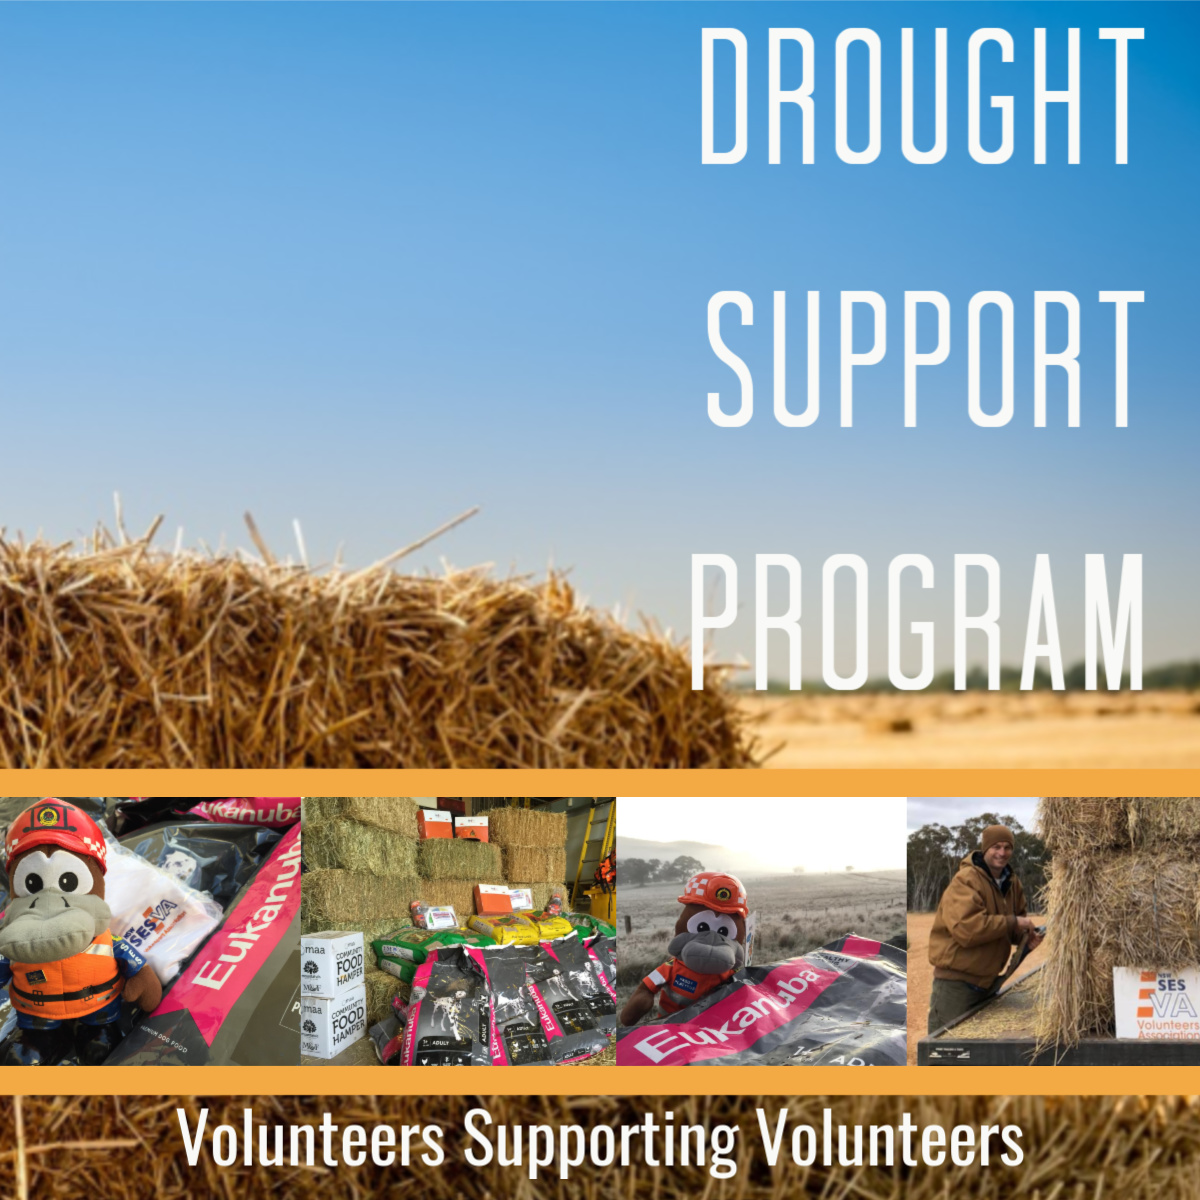 Drought Support Program - Get Involved. Donate Today